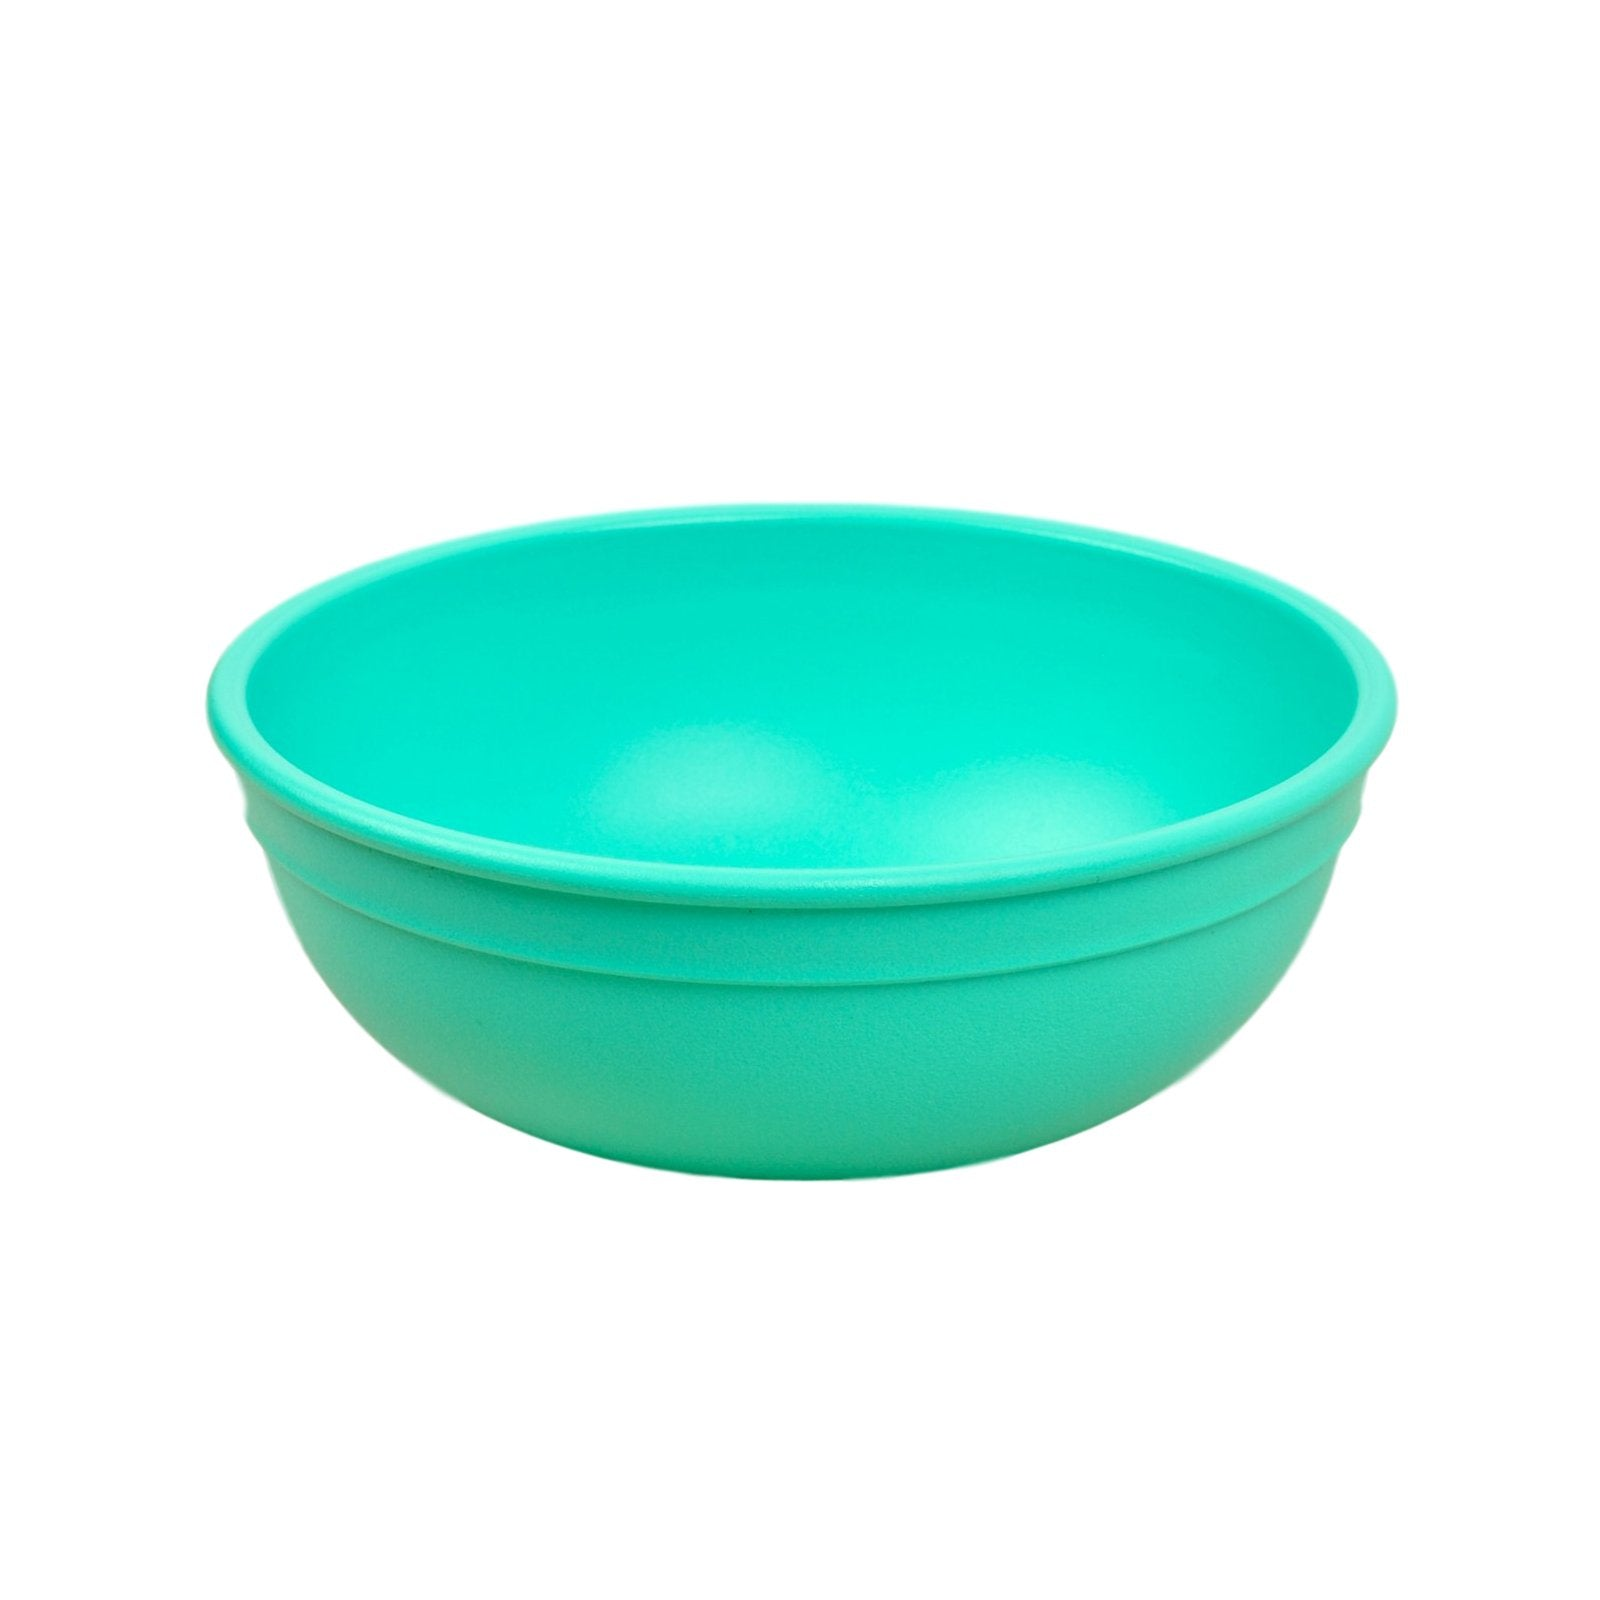 Replay Large Bowl Replay Dinnerware Aqua at Little Earth Nest Eco Shop